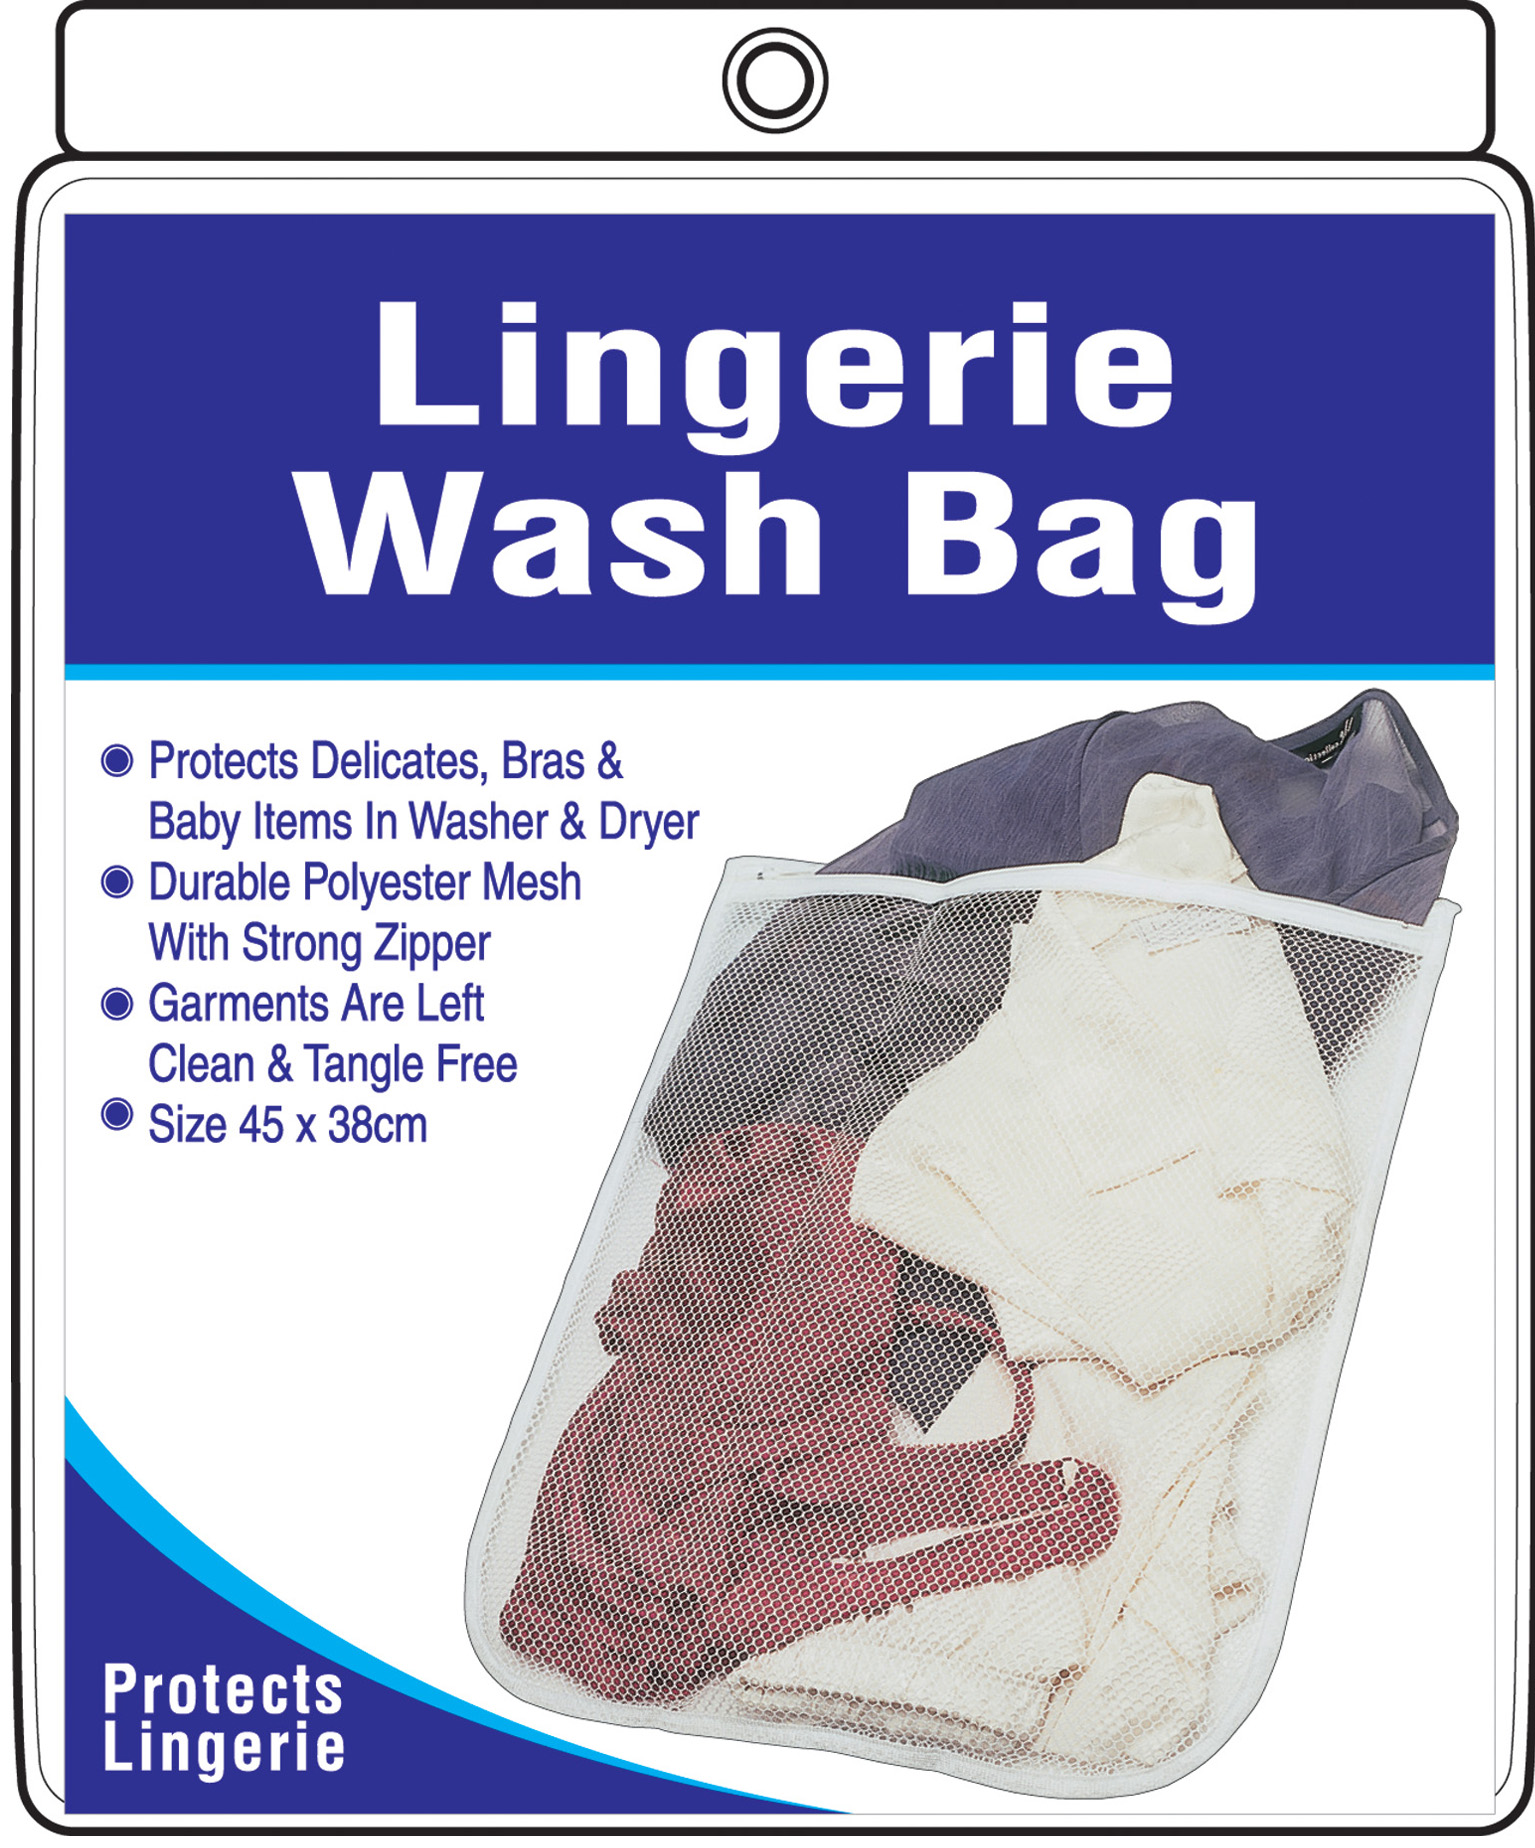 Laundry Products Lingerie Wash Bag